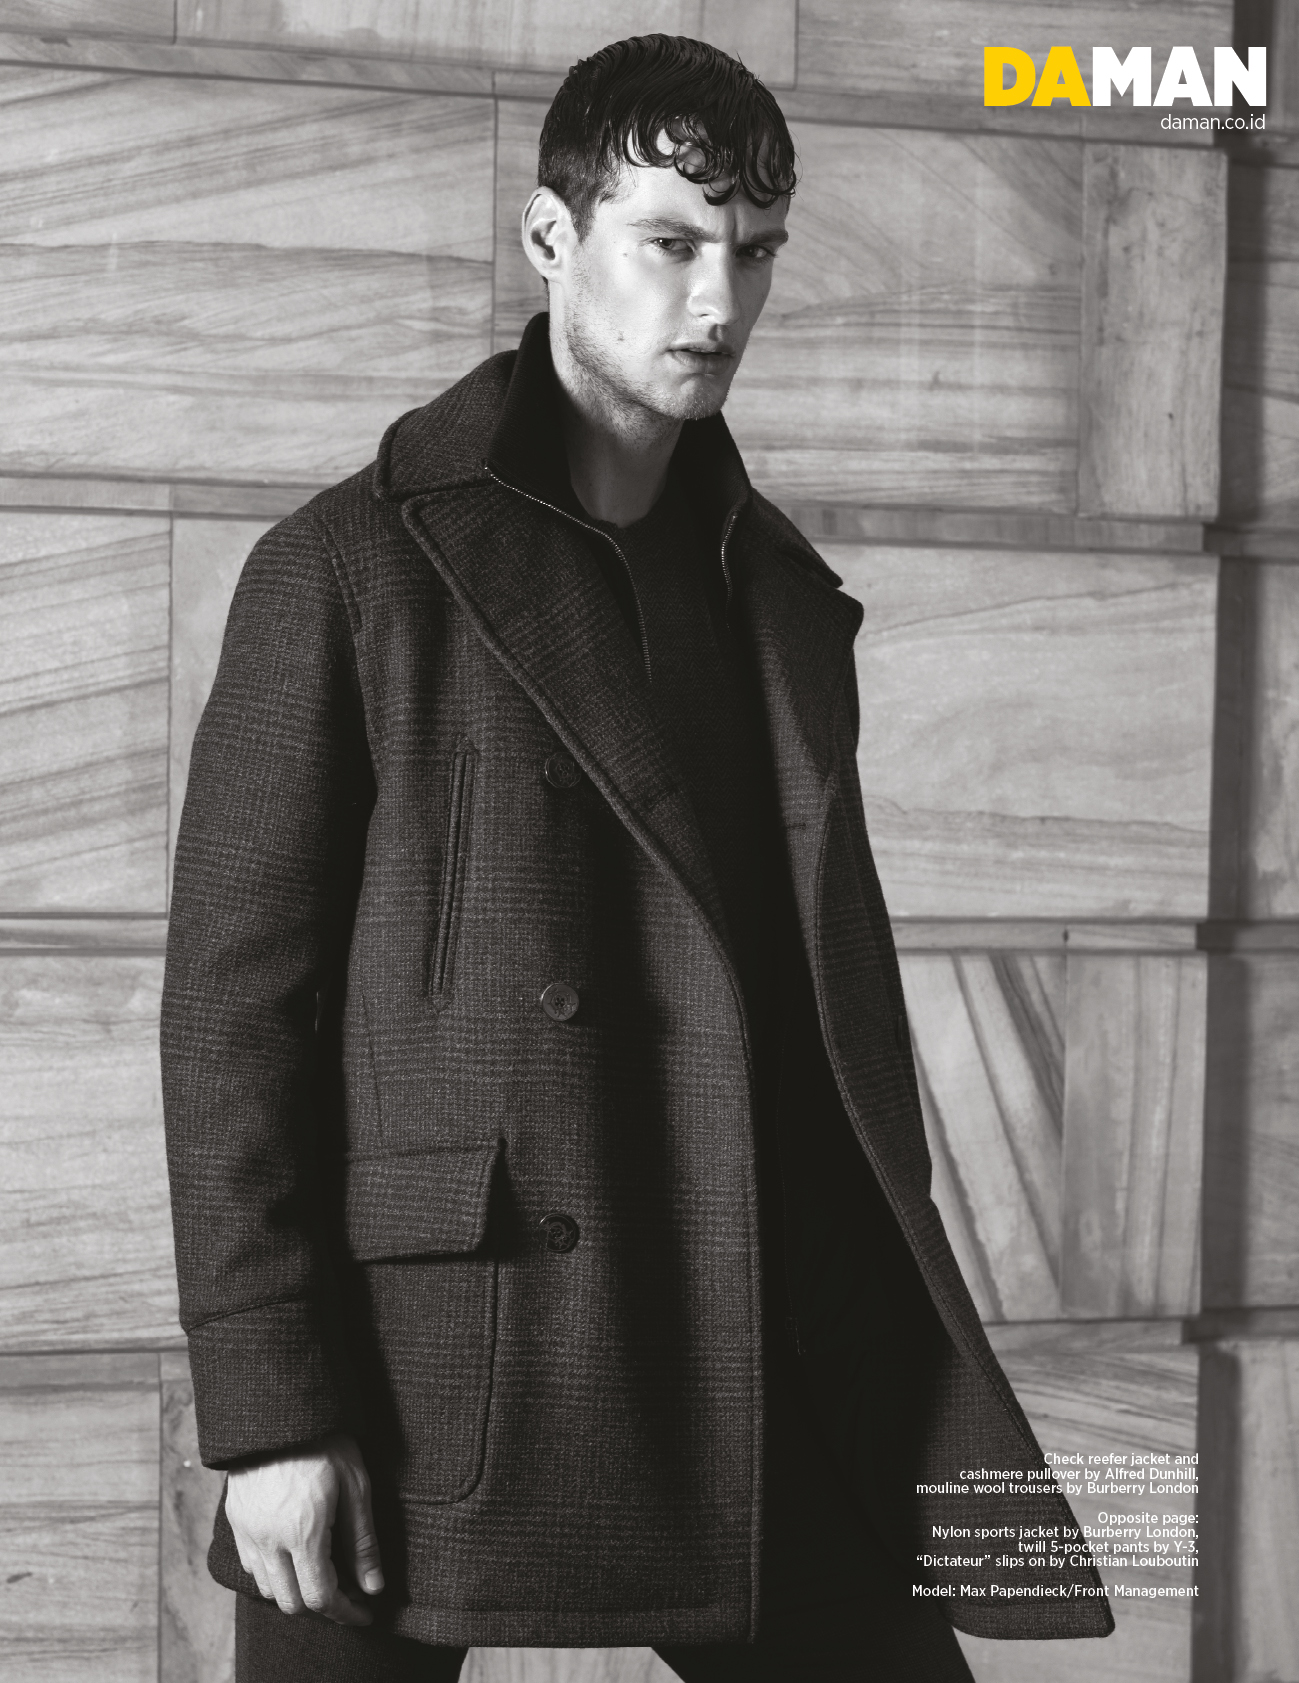 Check-reefer-jacket-and-cashmere-pullover-by-Alfred-Dunhill-mouline-wool-trousers-by-Burberry-London-.jpg